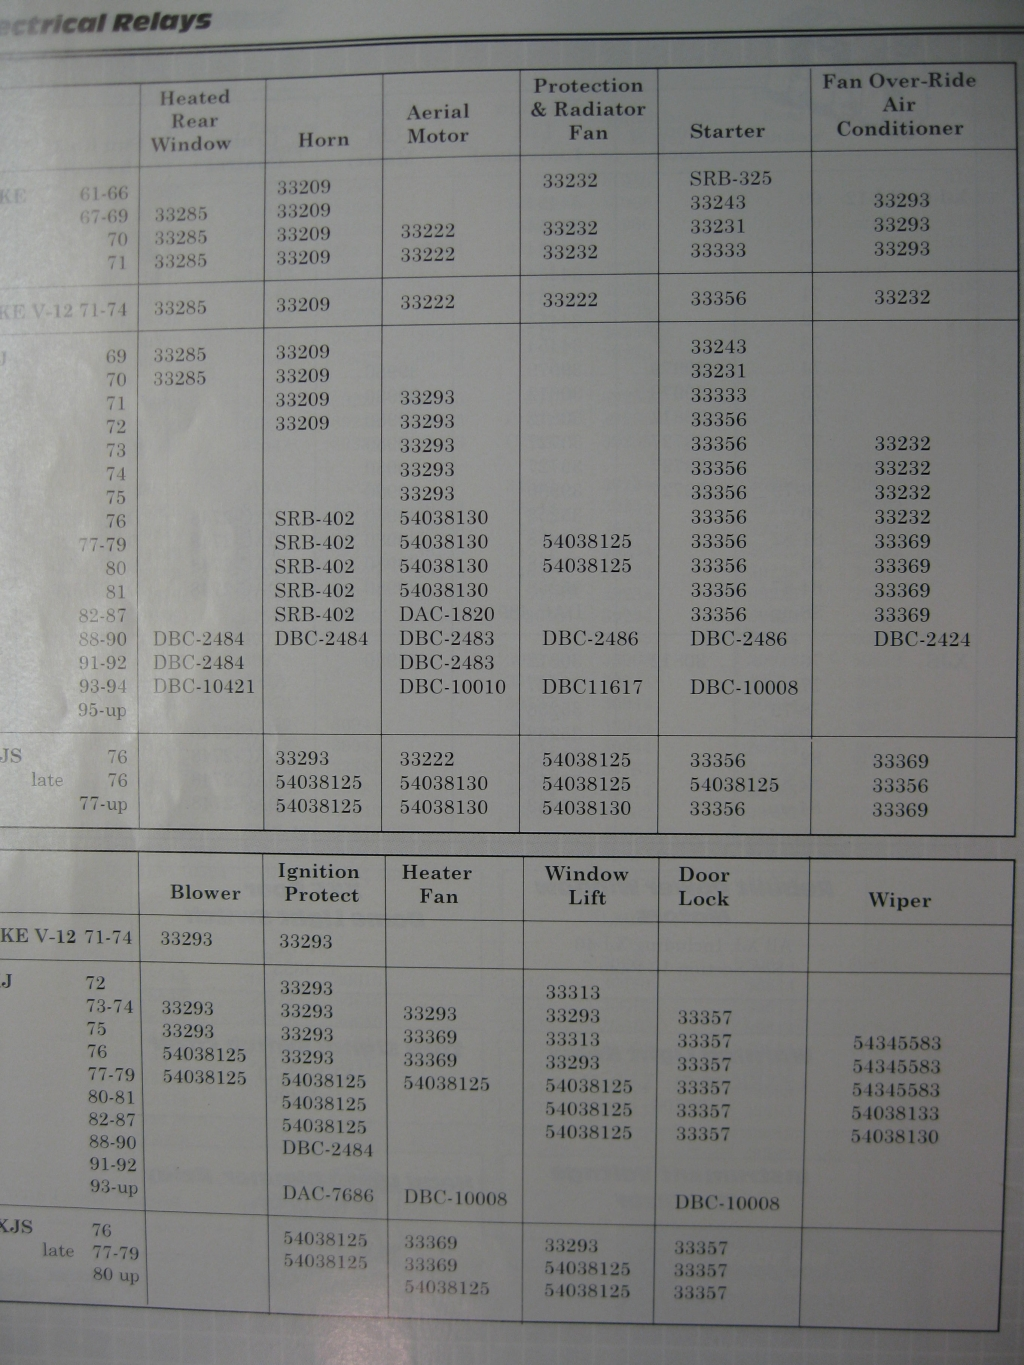 (From John Holmes. These are the Lucas relay numbers. The E-Type model/year  is in the first column of the table.)